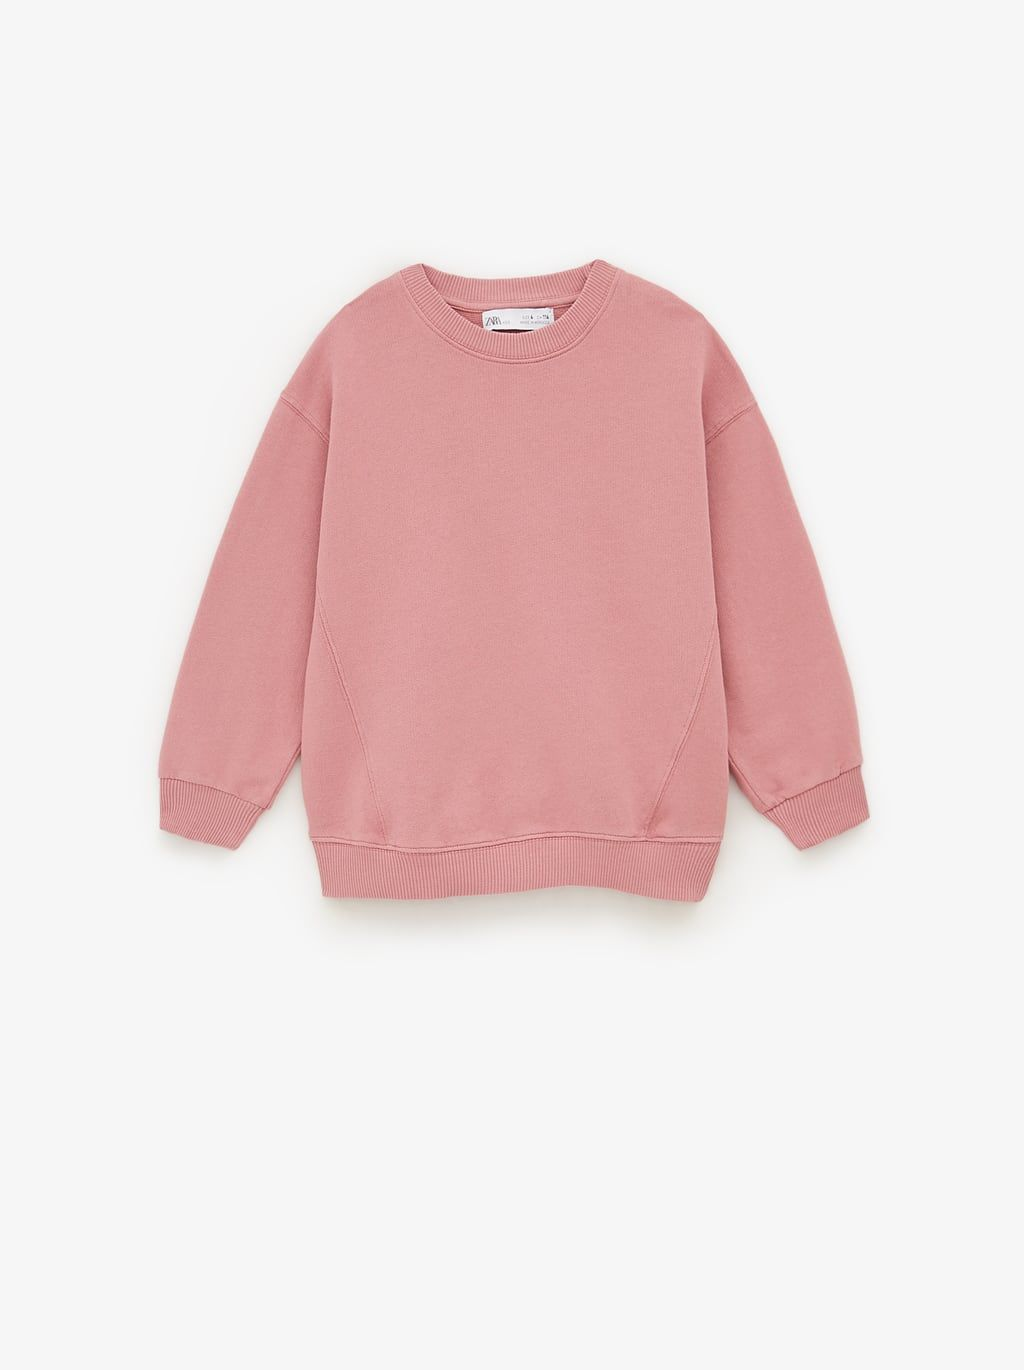 Edited Sweatshirt With Seam Details Sweatshirts Girl 6 14 Years Kids Zara United States Sweatshirt